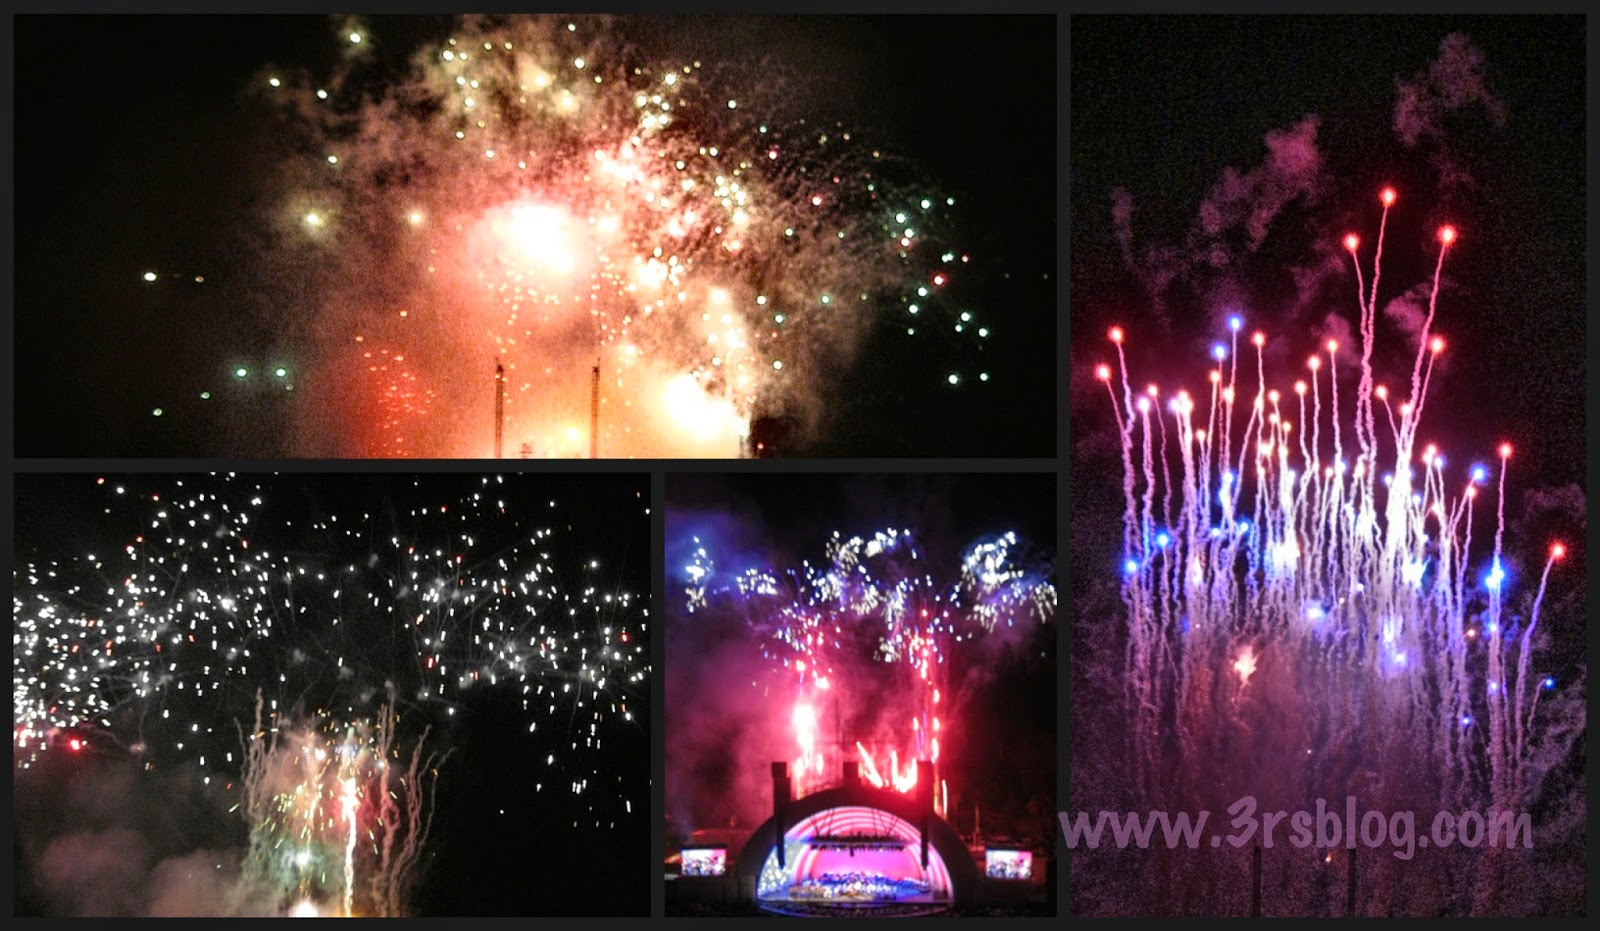 July 4th 2014 fireworks collage Hollywood Bowl The 3 R's Blog